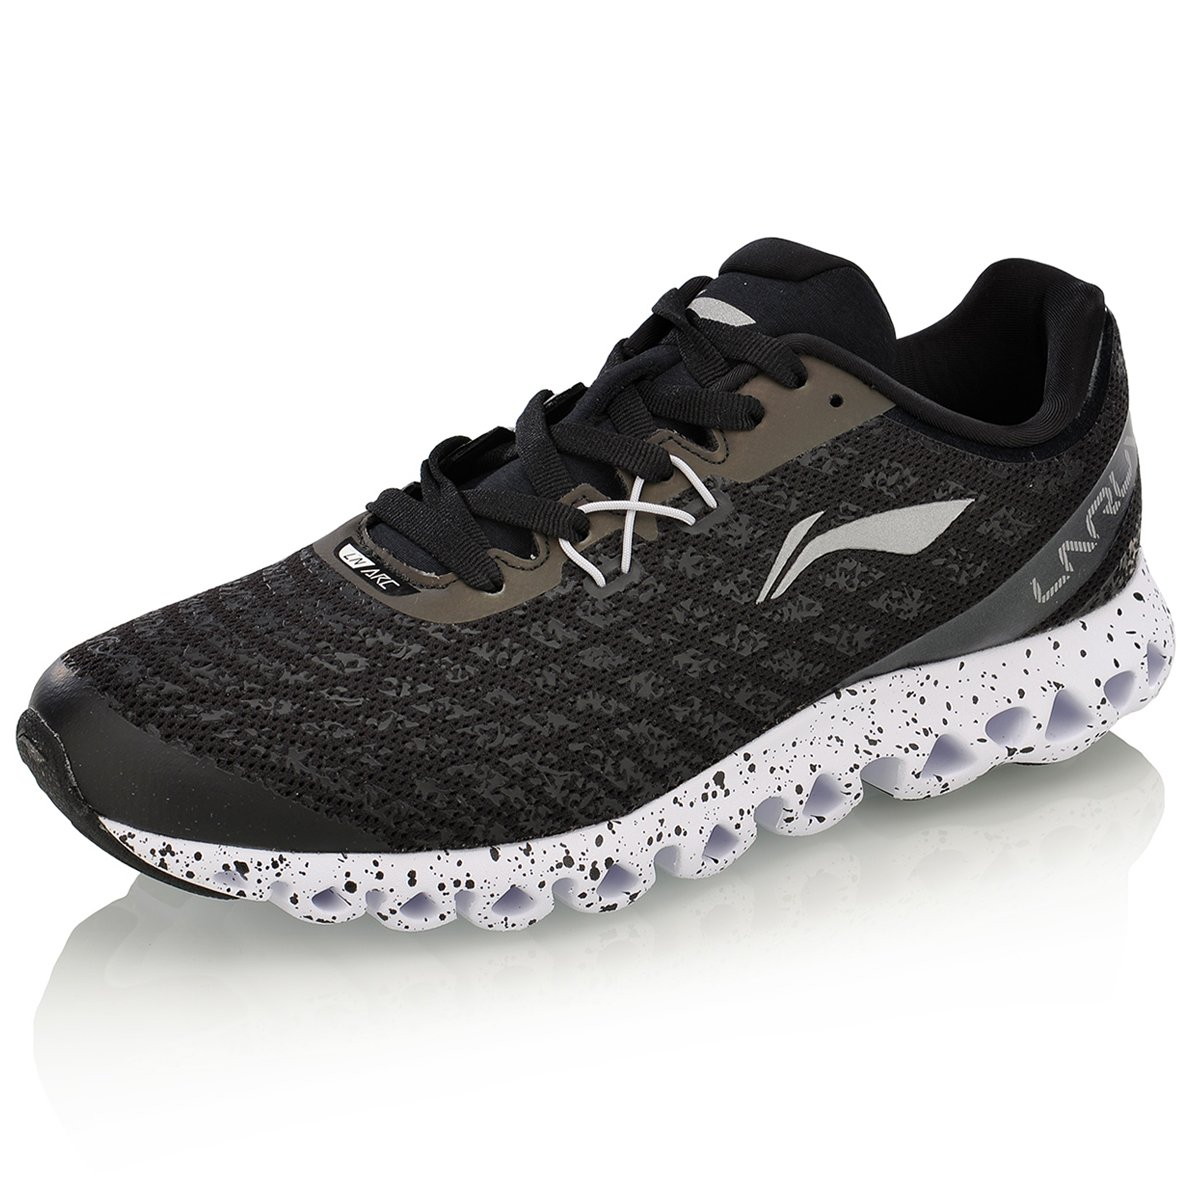 fea63e309381f LI-NING Men Running Arc Cushion Sneakers Sports Shoes